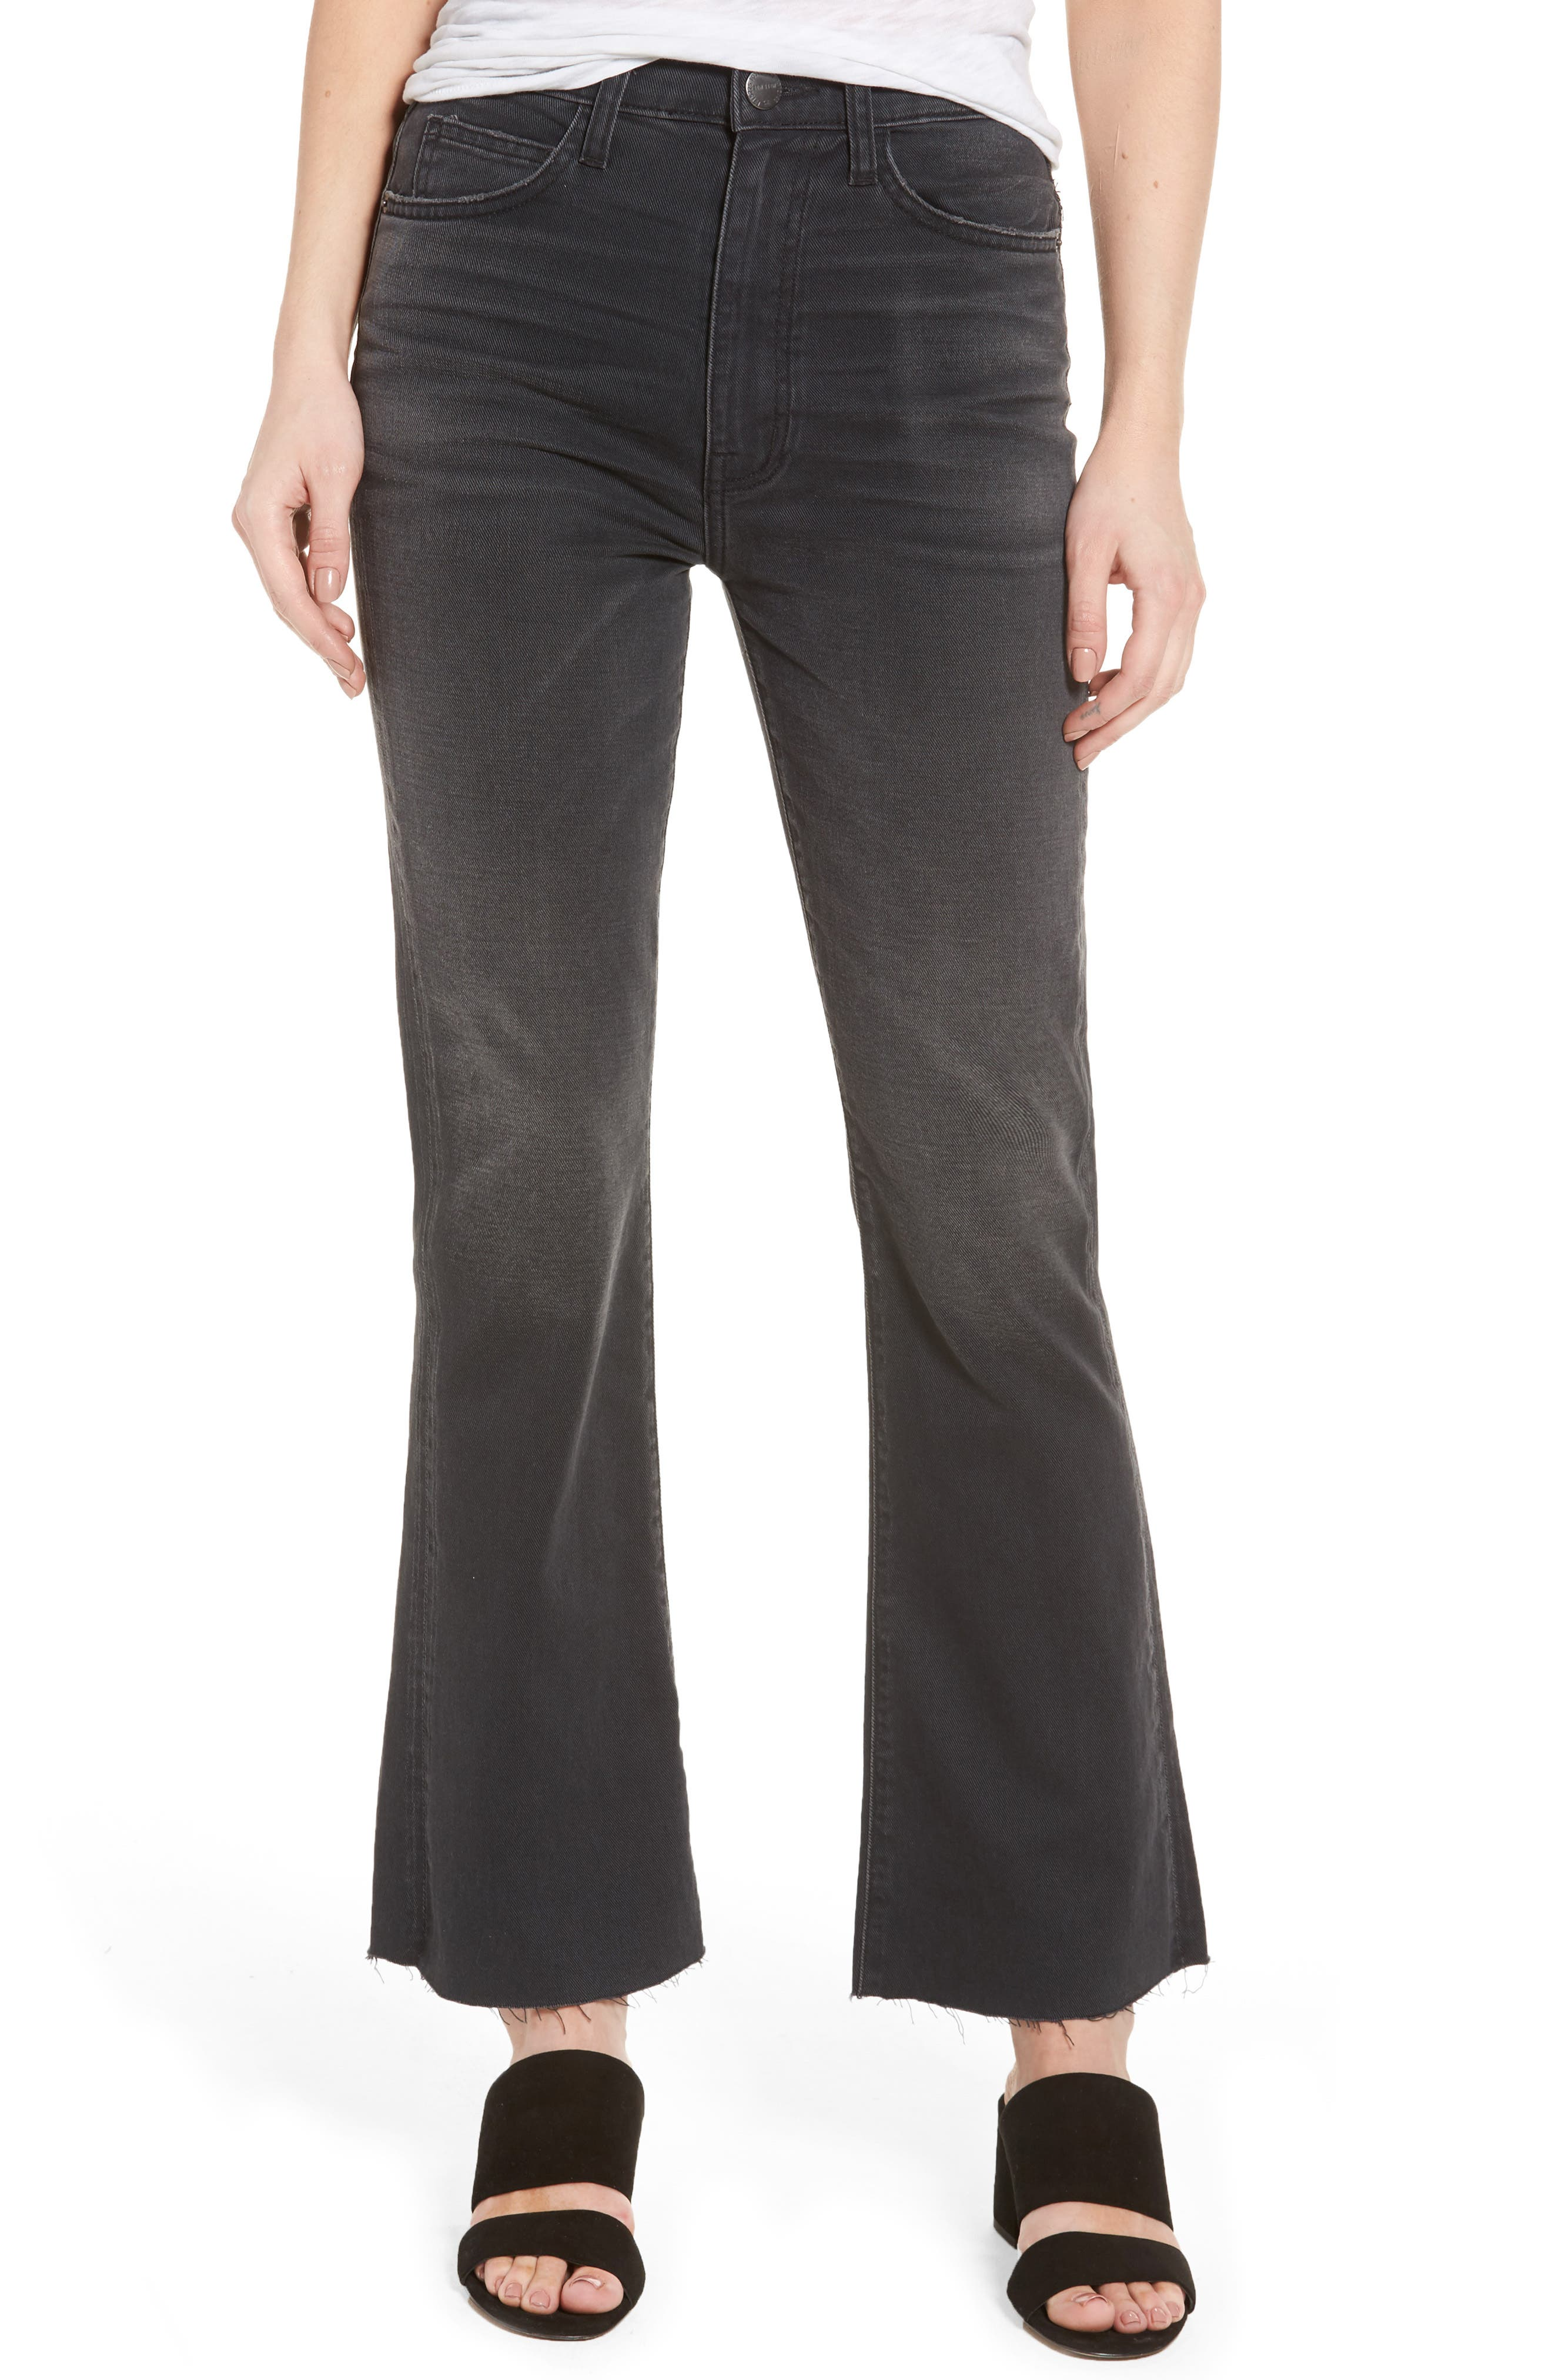 Alternate Image 1 Selected - Current/Elliott The Kick High Waist Crop Flare Jeans (Edgebrook)